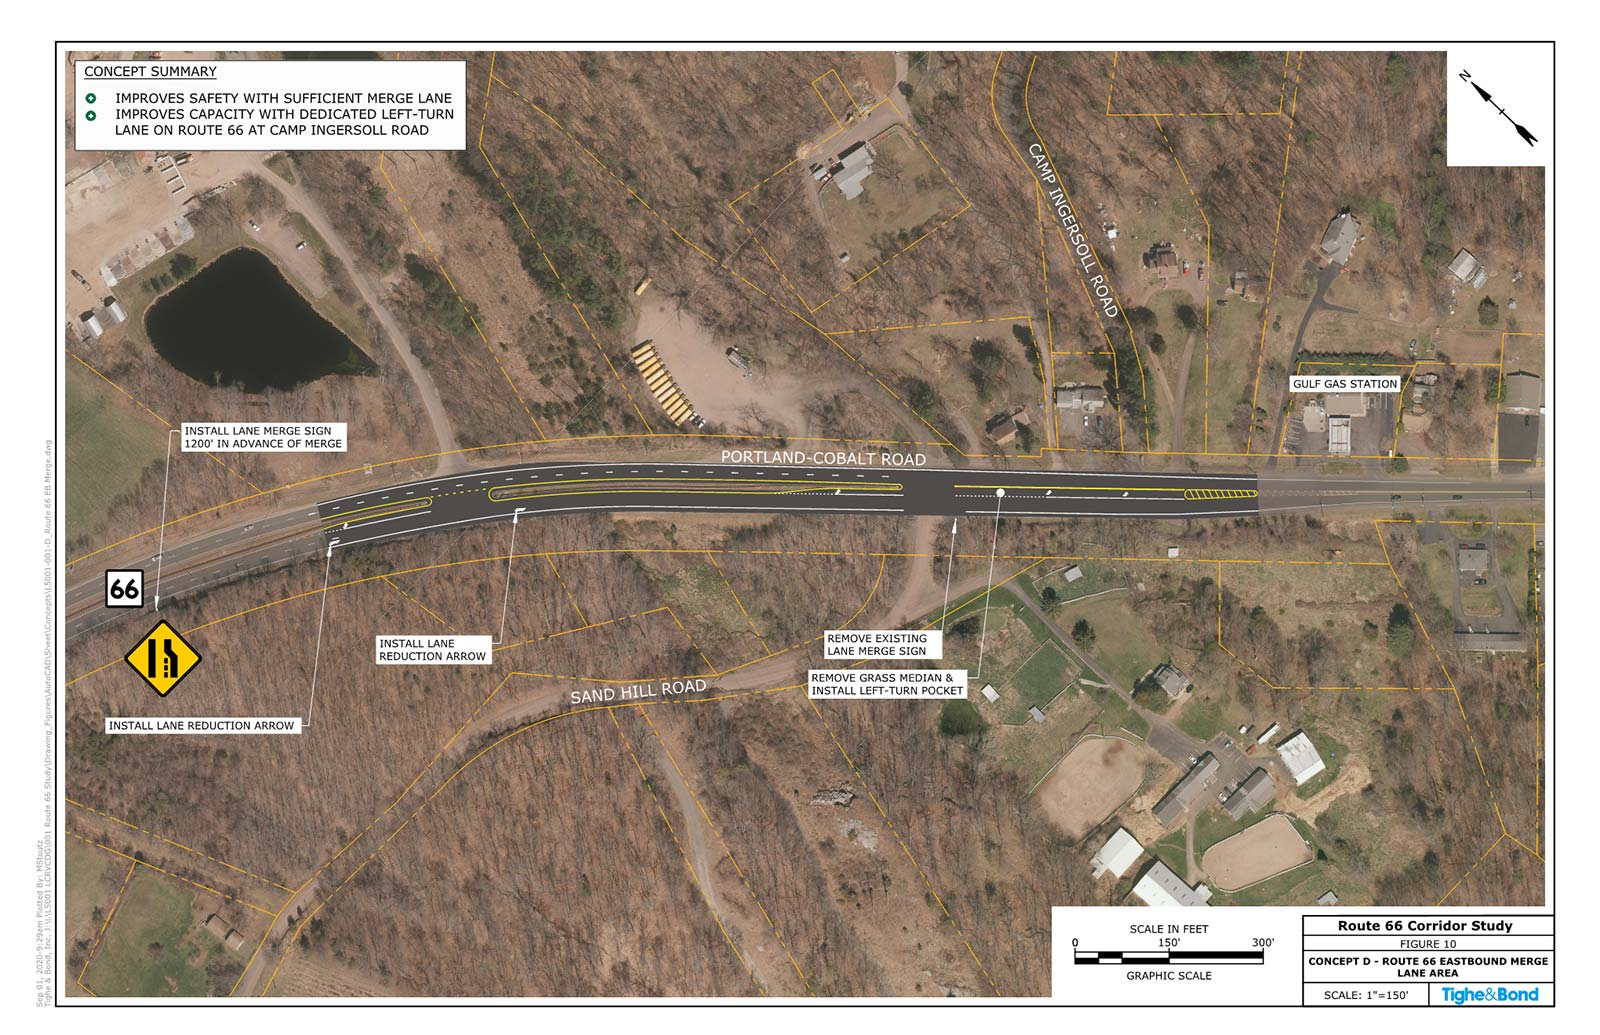 Route 66 Eastbound Merge Lane Area Safety Improvements (Concept D). Route 66 Transportation Study, Portland and East Hampton, CT.